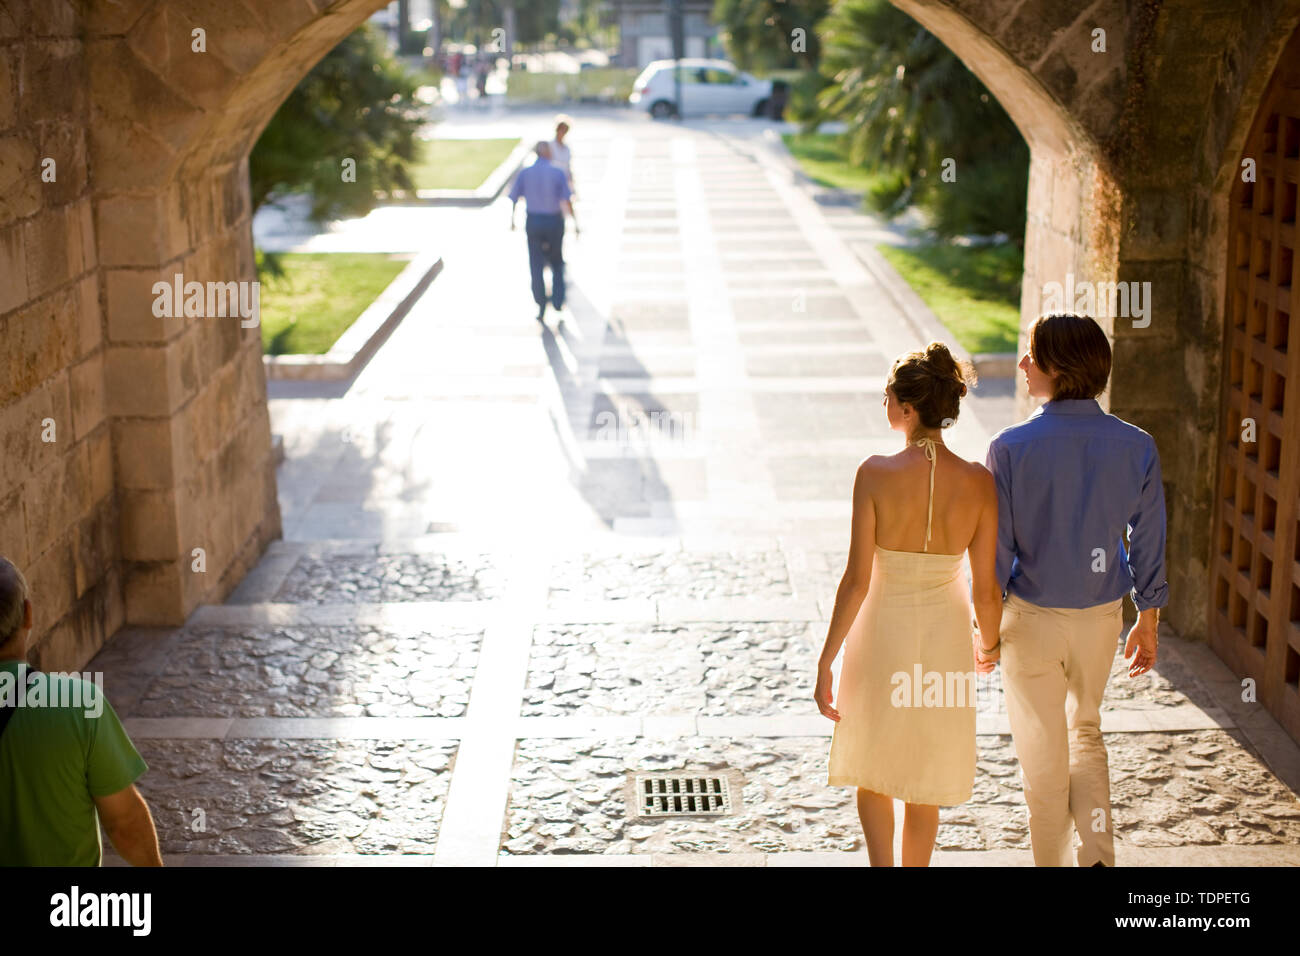 Couple walking into a park at sunset. - Stock Image